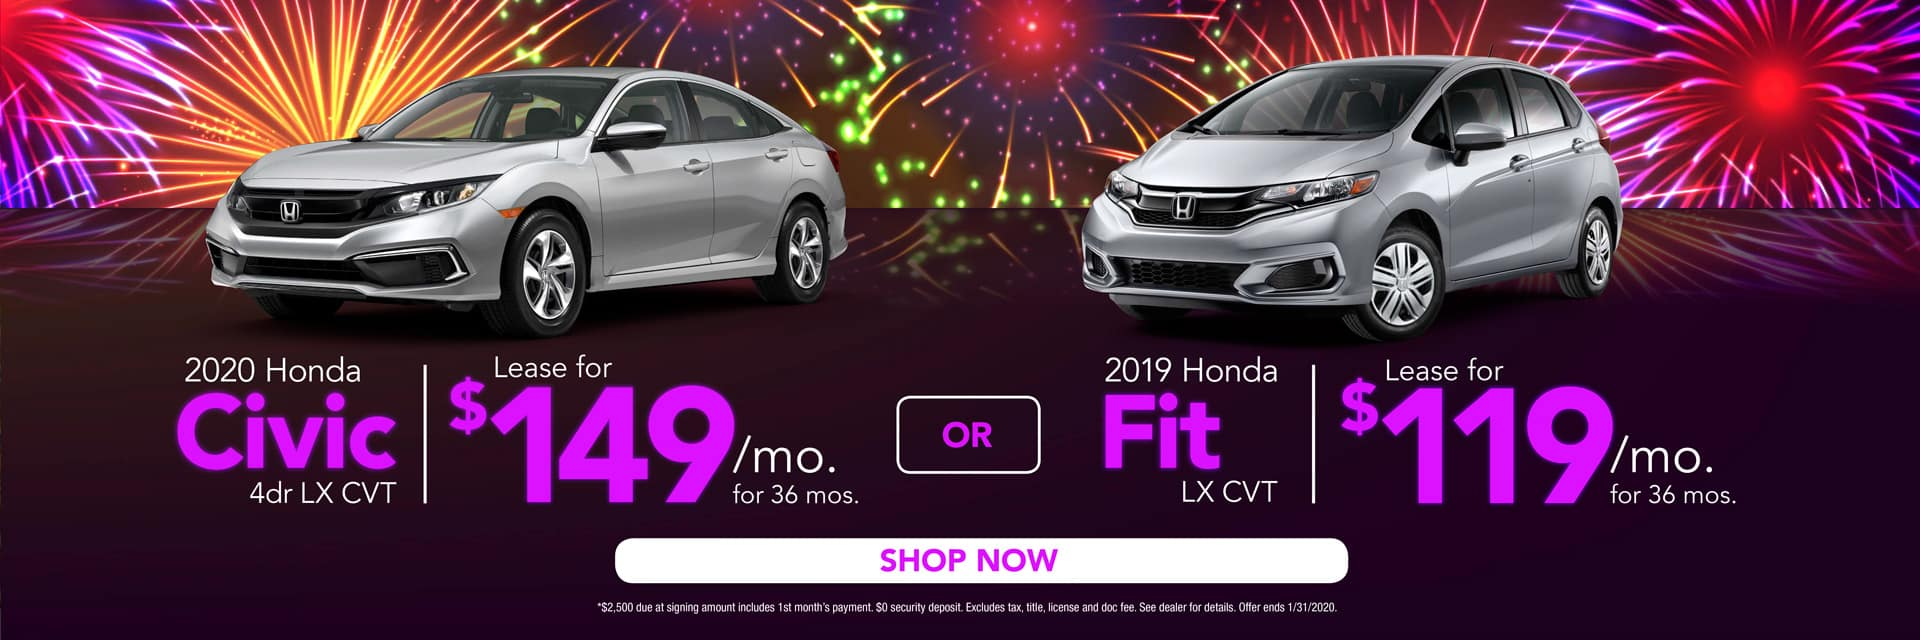 Civic & Fit Lease Offers